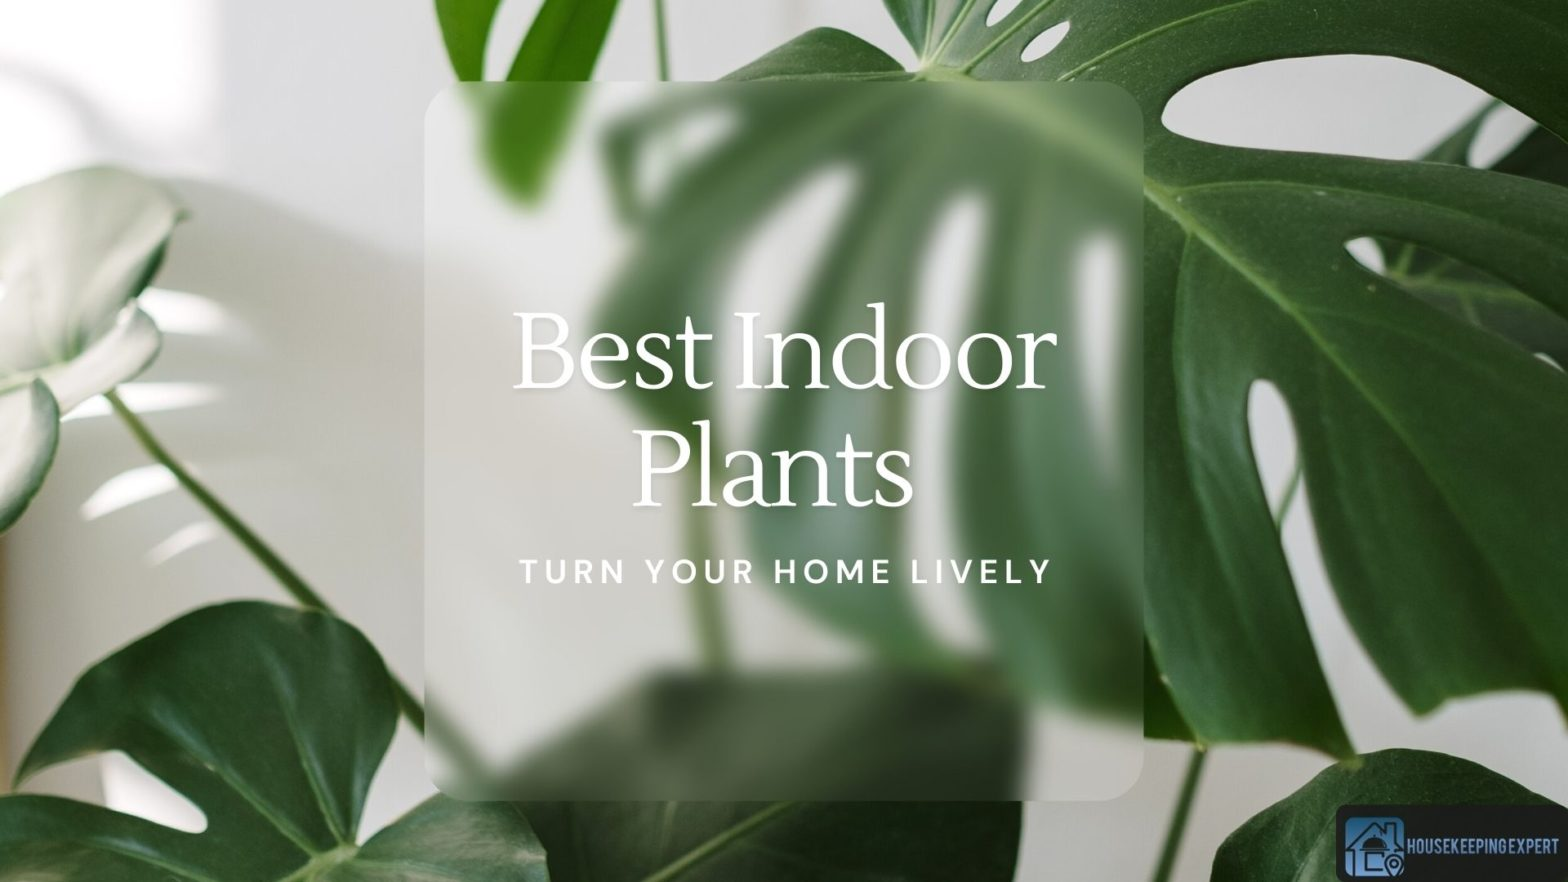 Best Indoor Plants To Turn Your Home Lively